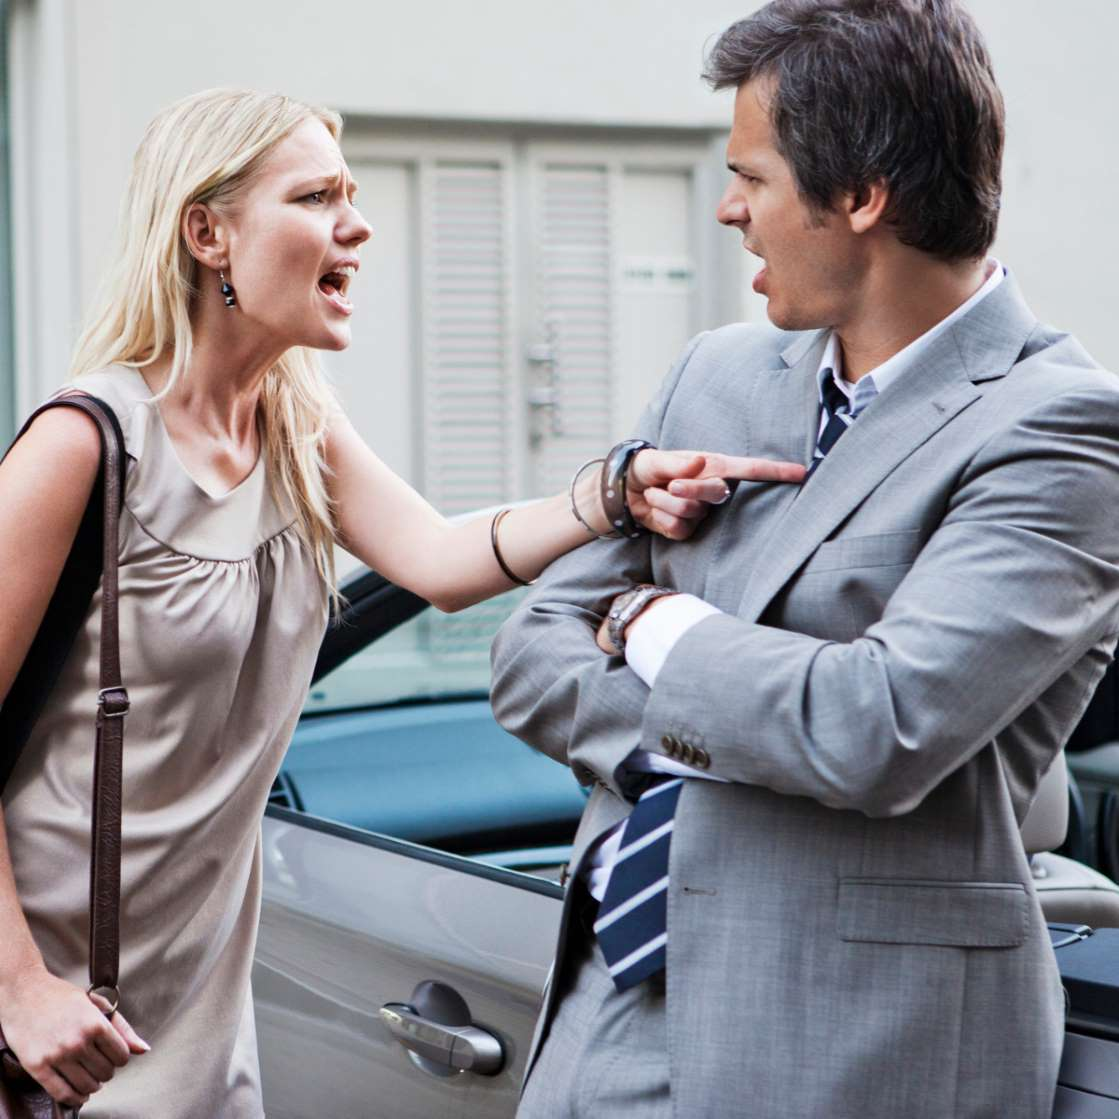 Always thinking that your partner is cheating on you? Here's how to stop it